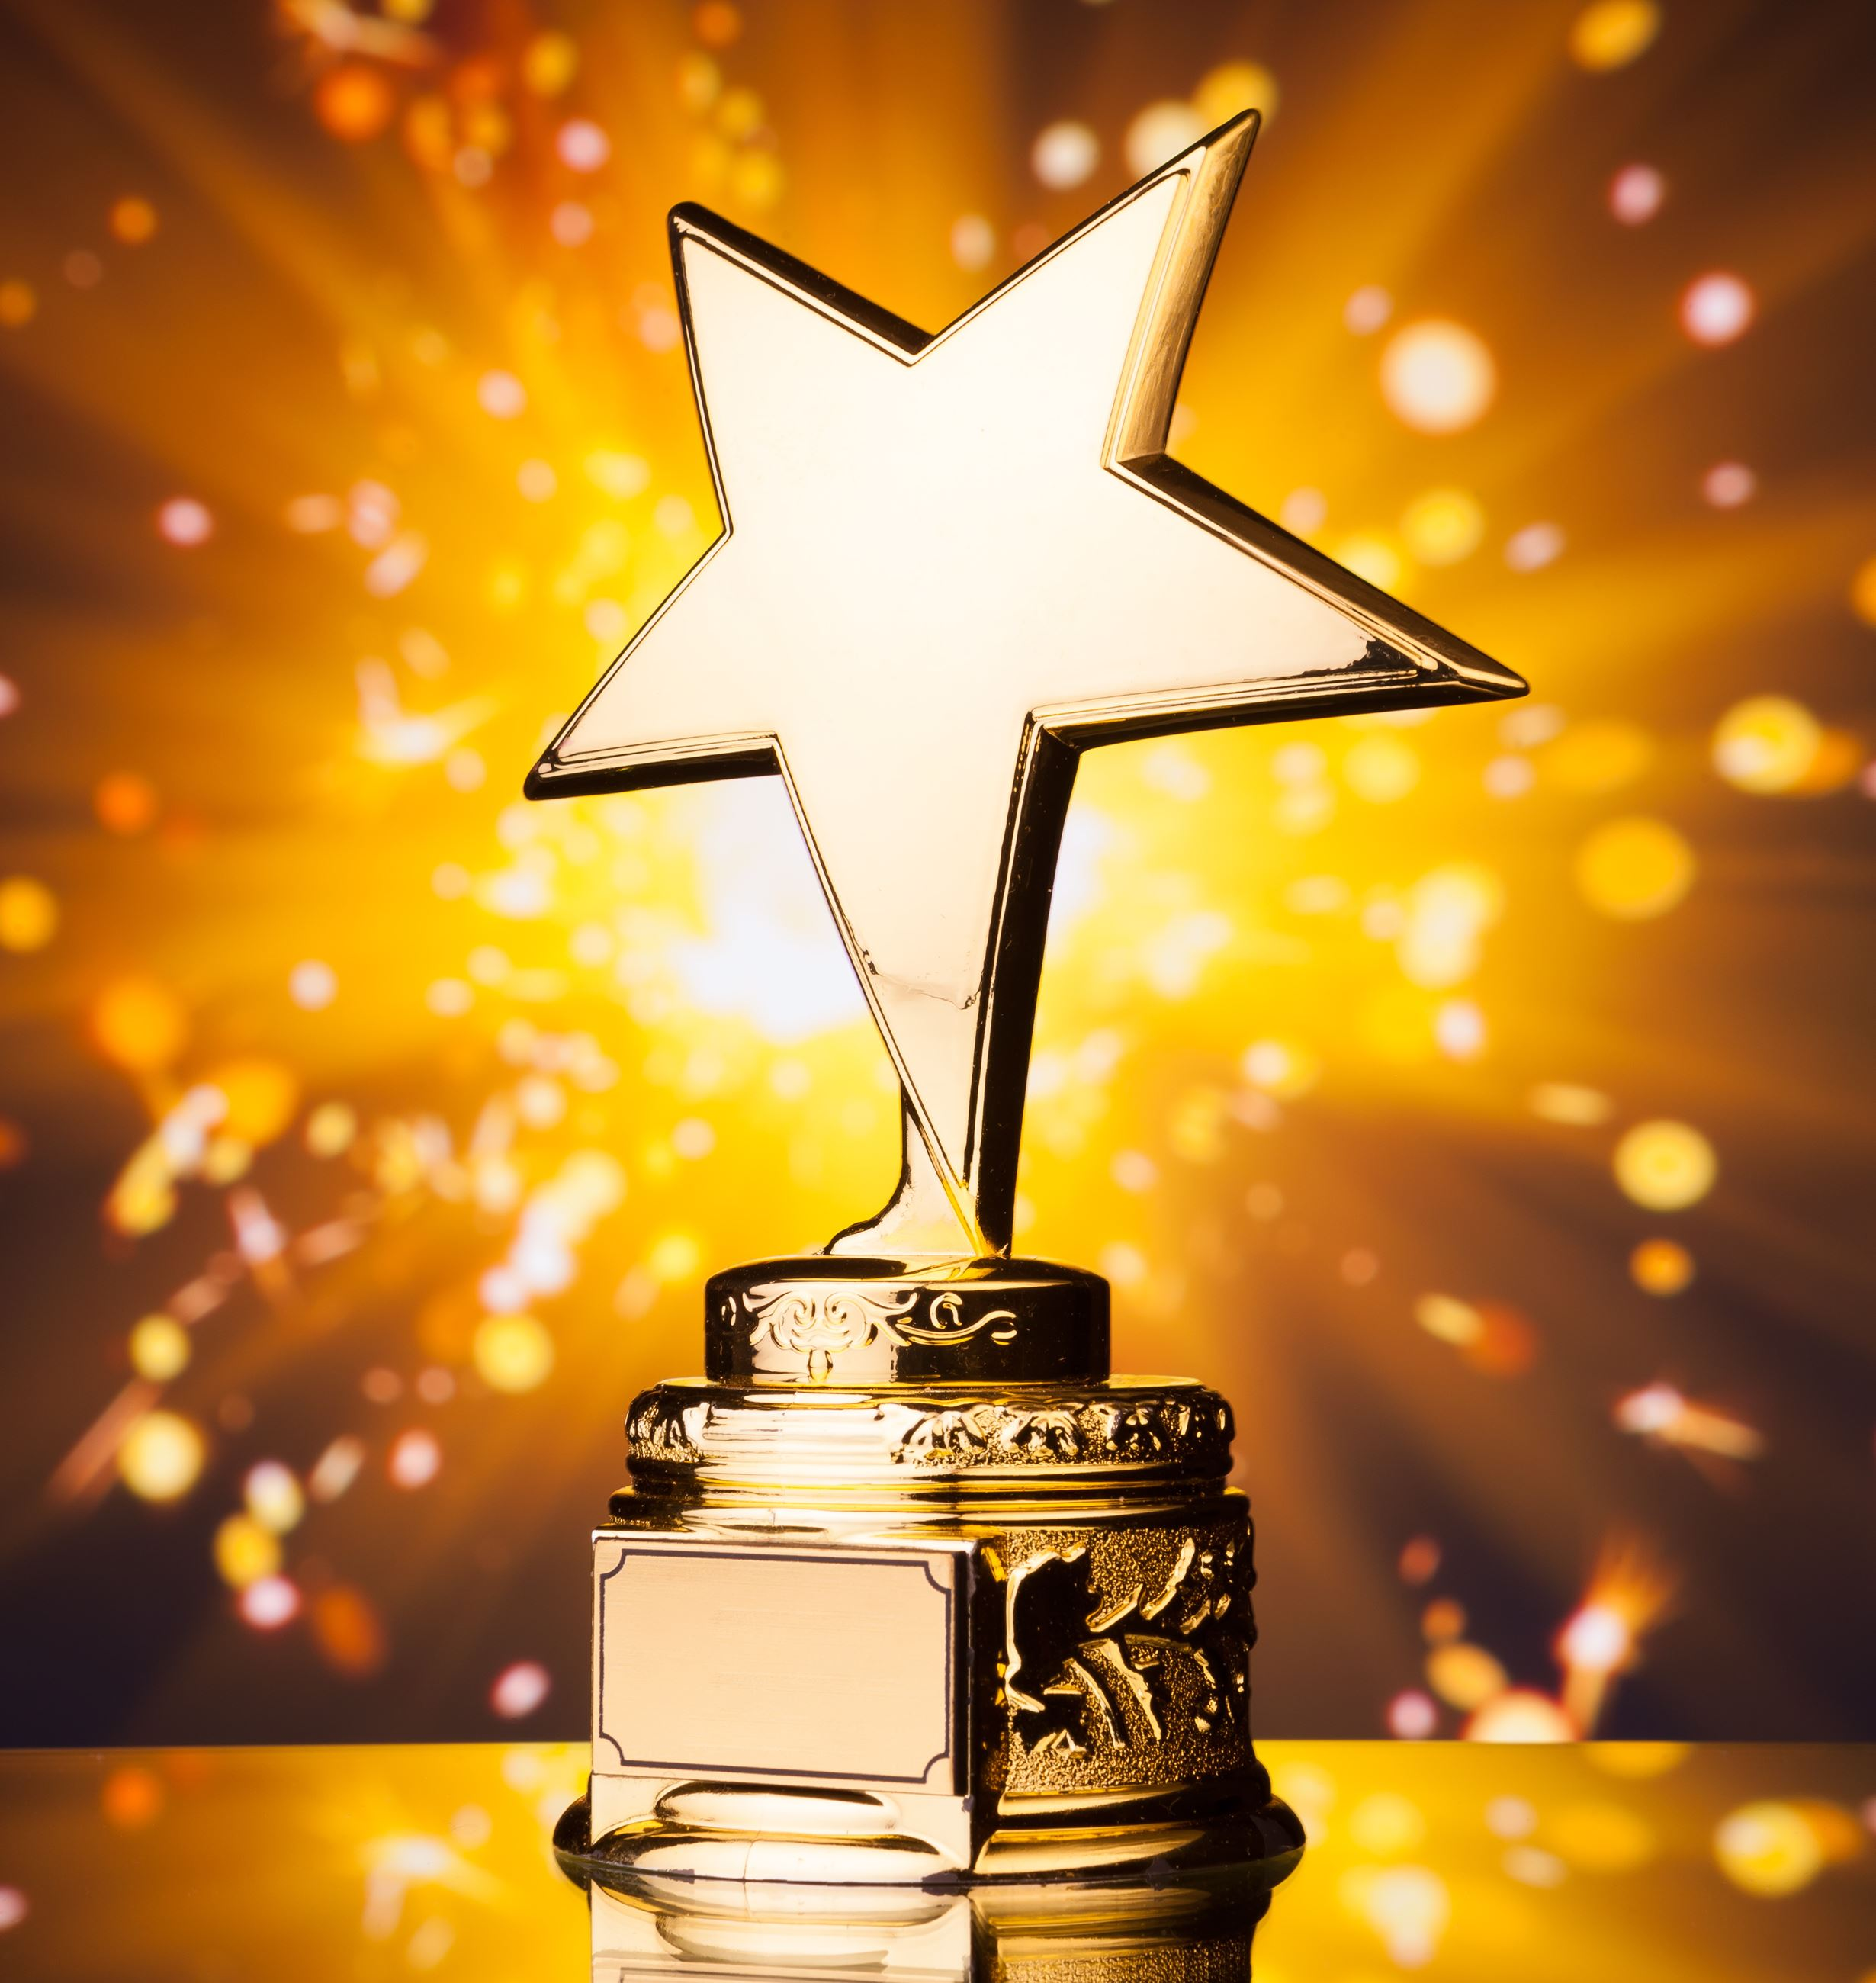 Award -ThinkstockPhotos-494638624